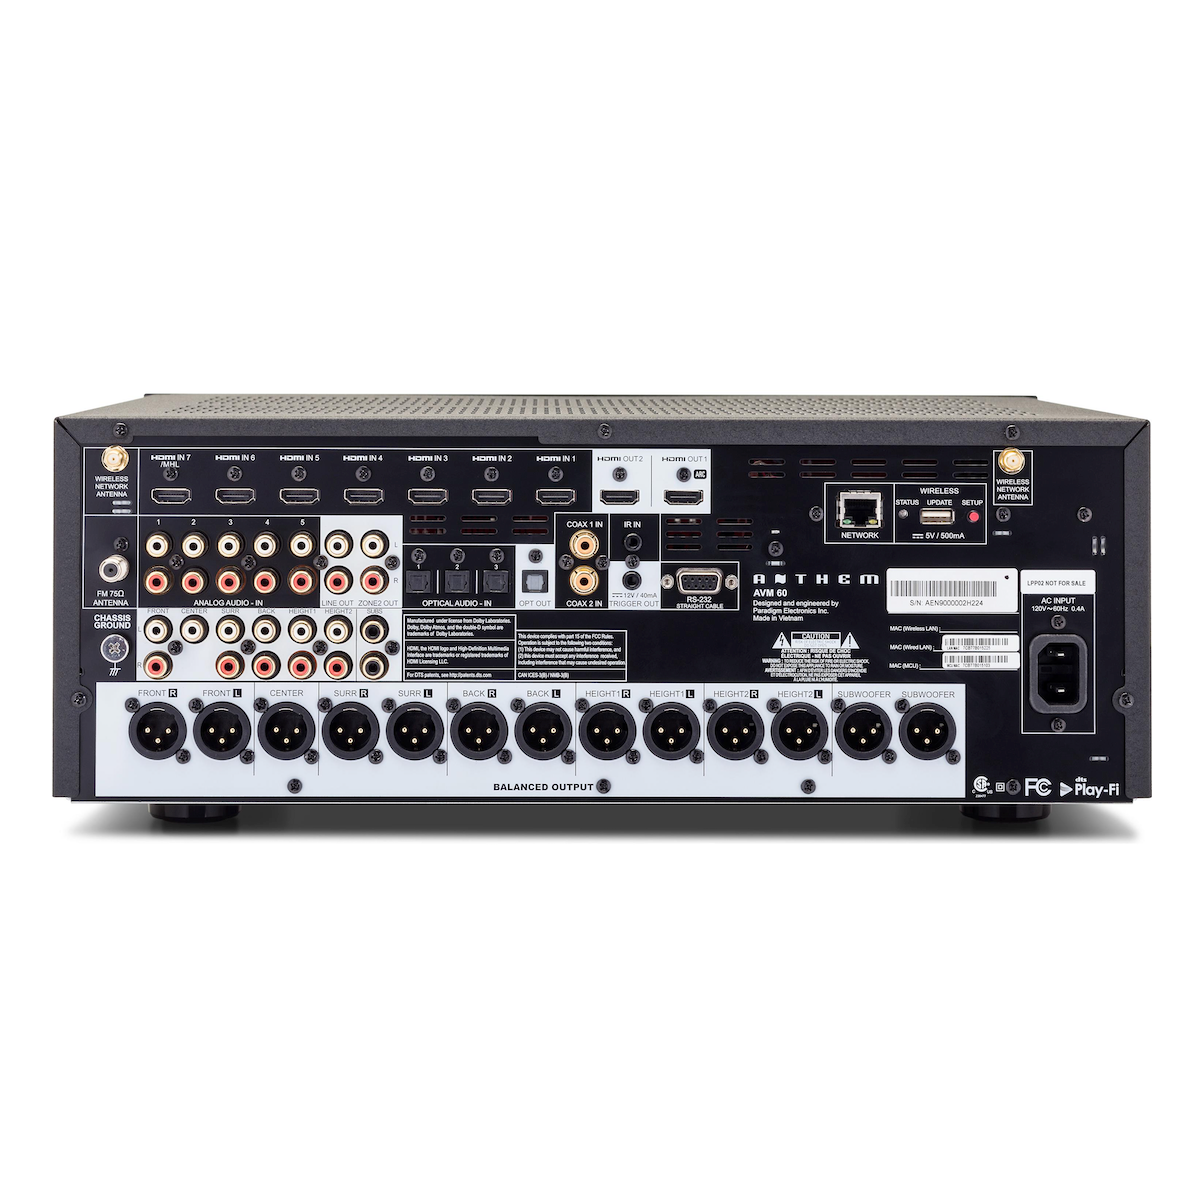 Anthem AV AVM 60 - 11.2 Channel Pre-Amplifier, Anthem AV, AV Processor - Auratech LLC